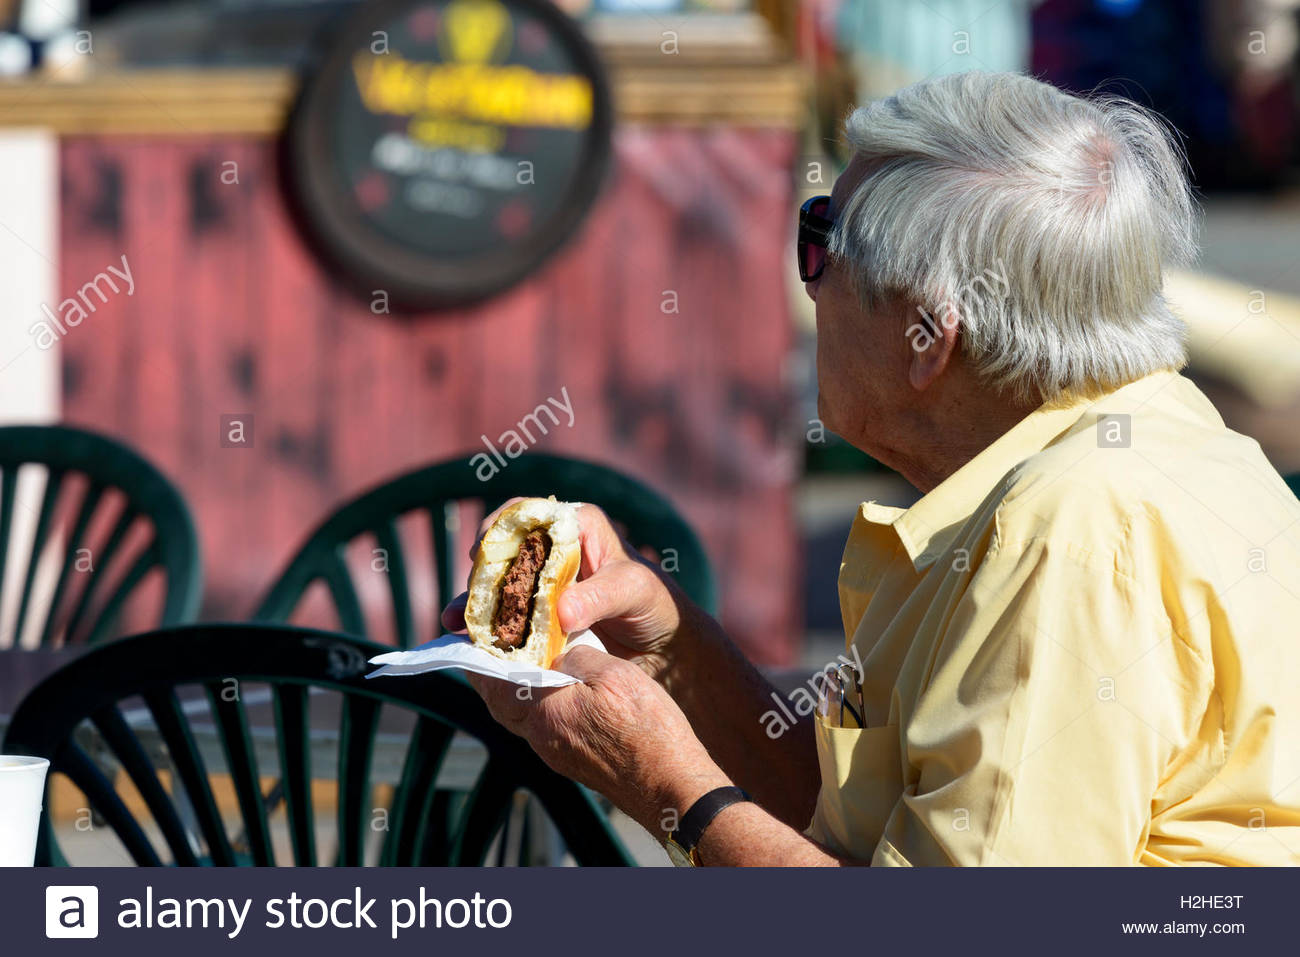 OAP eating a burger in the market, Salisbury, Wiltshire, England UK - Stock Image